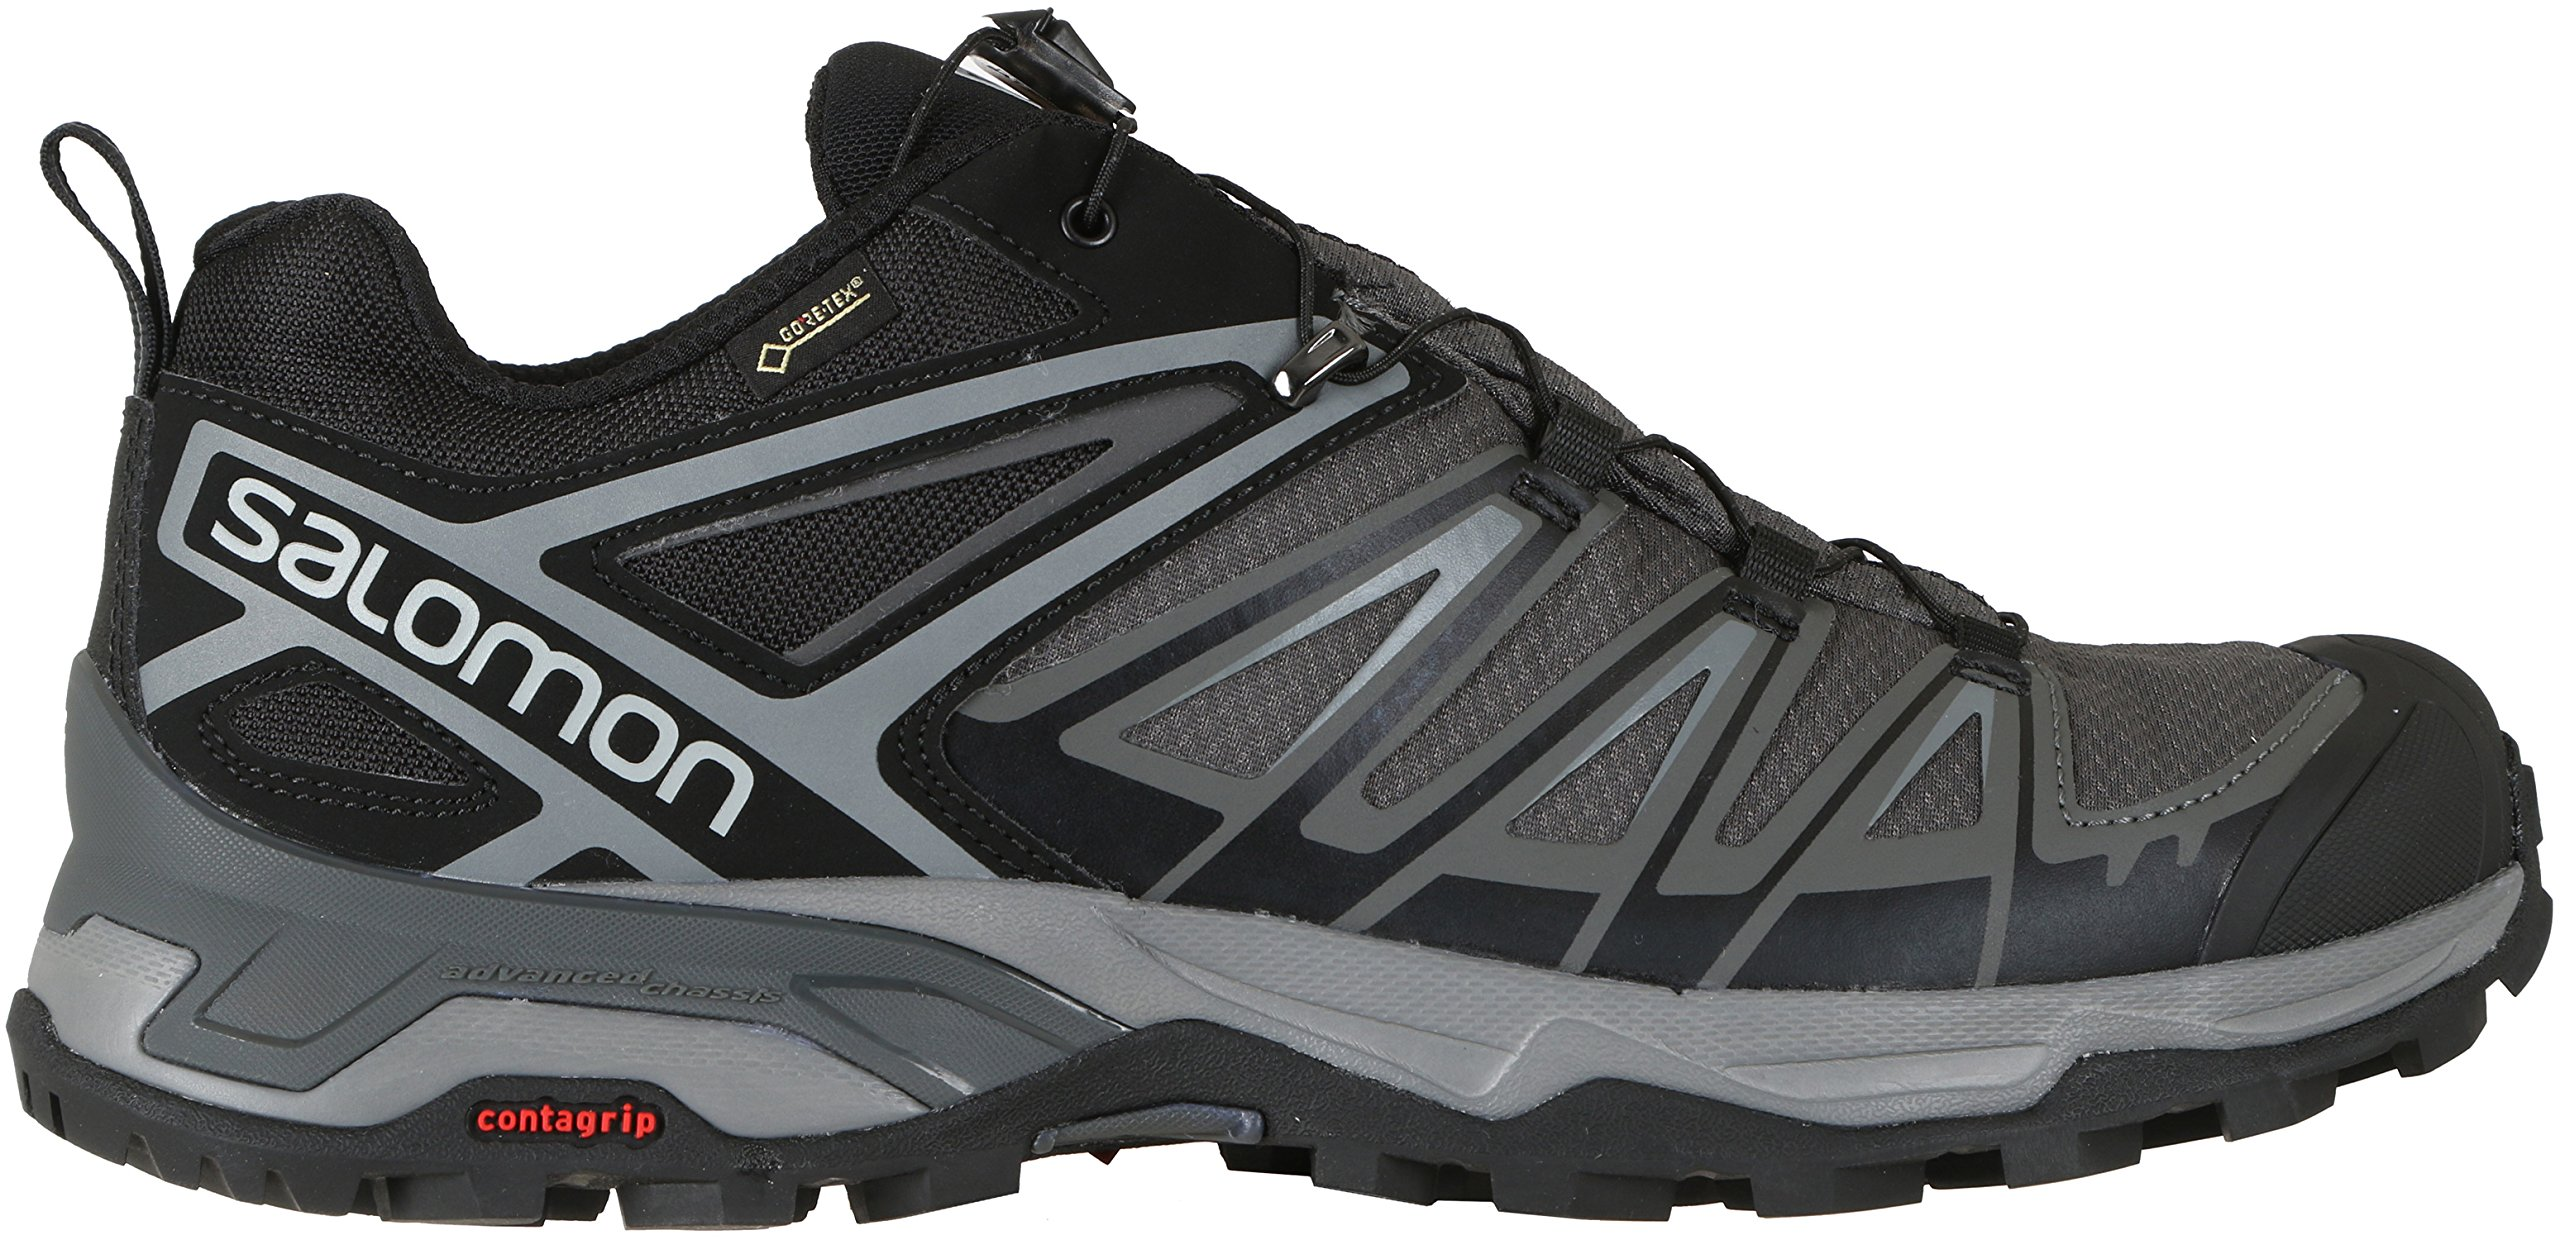 SALOMON X ULTRA 3 GTX MEN'S HIKING SHOES BLACK/MAGNET/QUIET SHADE SZ 8.5 by Salomon